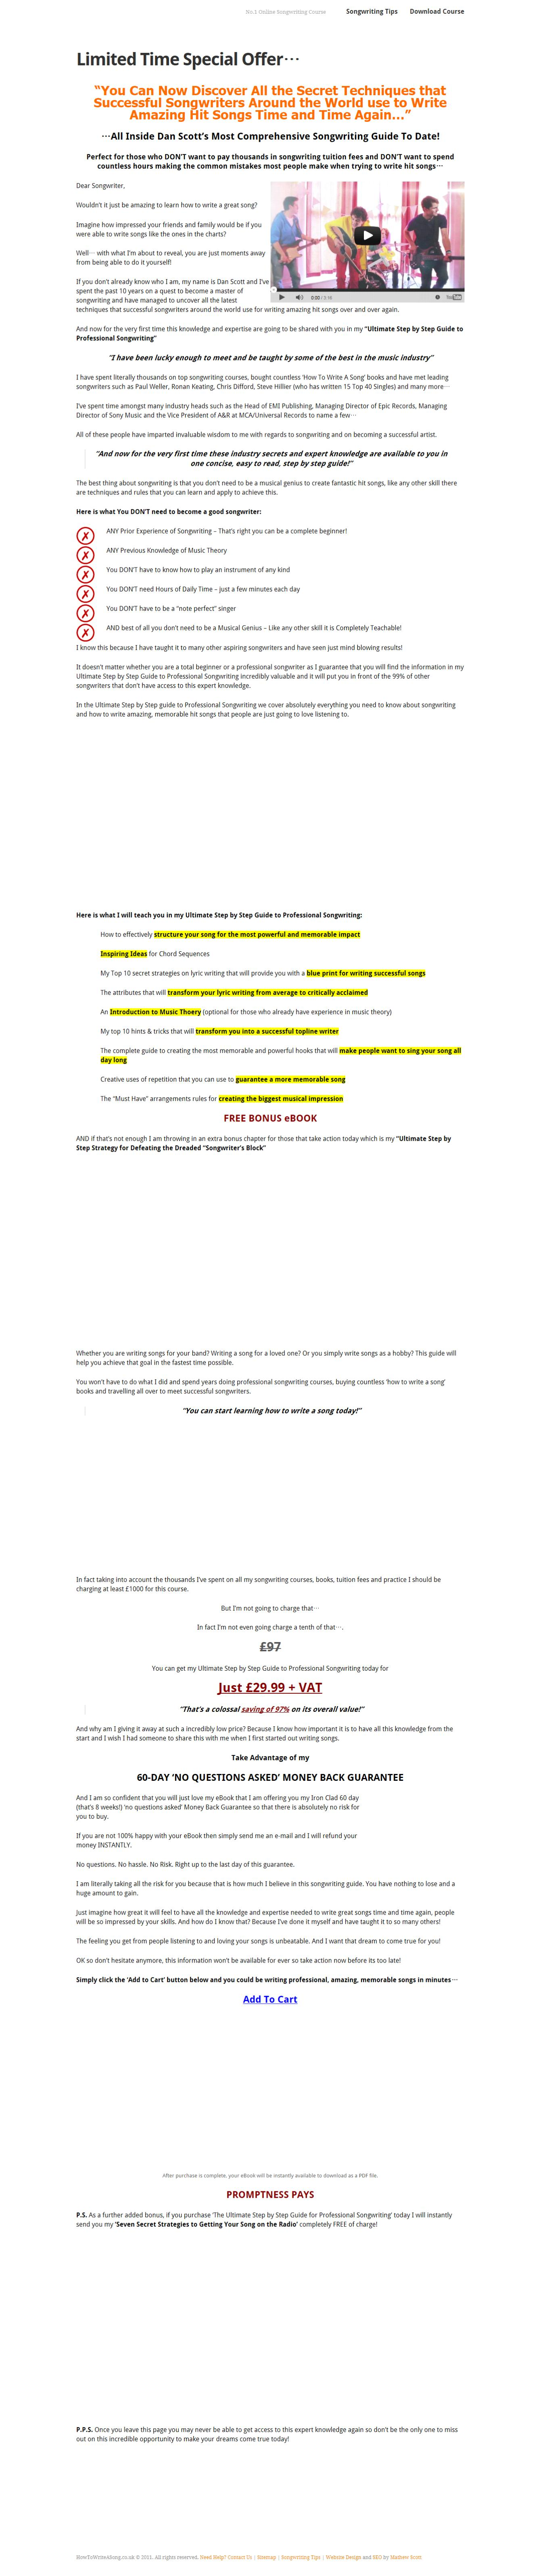 Ultimate Step By Step Guide To Professional Songwriting Review  Get Full Review : http://scamereviews.typepad.com/blog/2013/01/ultimate-step-by-step-guide-to-professional-songwriting-get-for-free.html